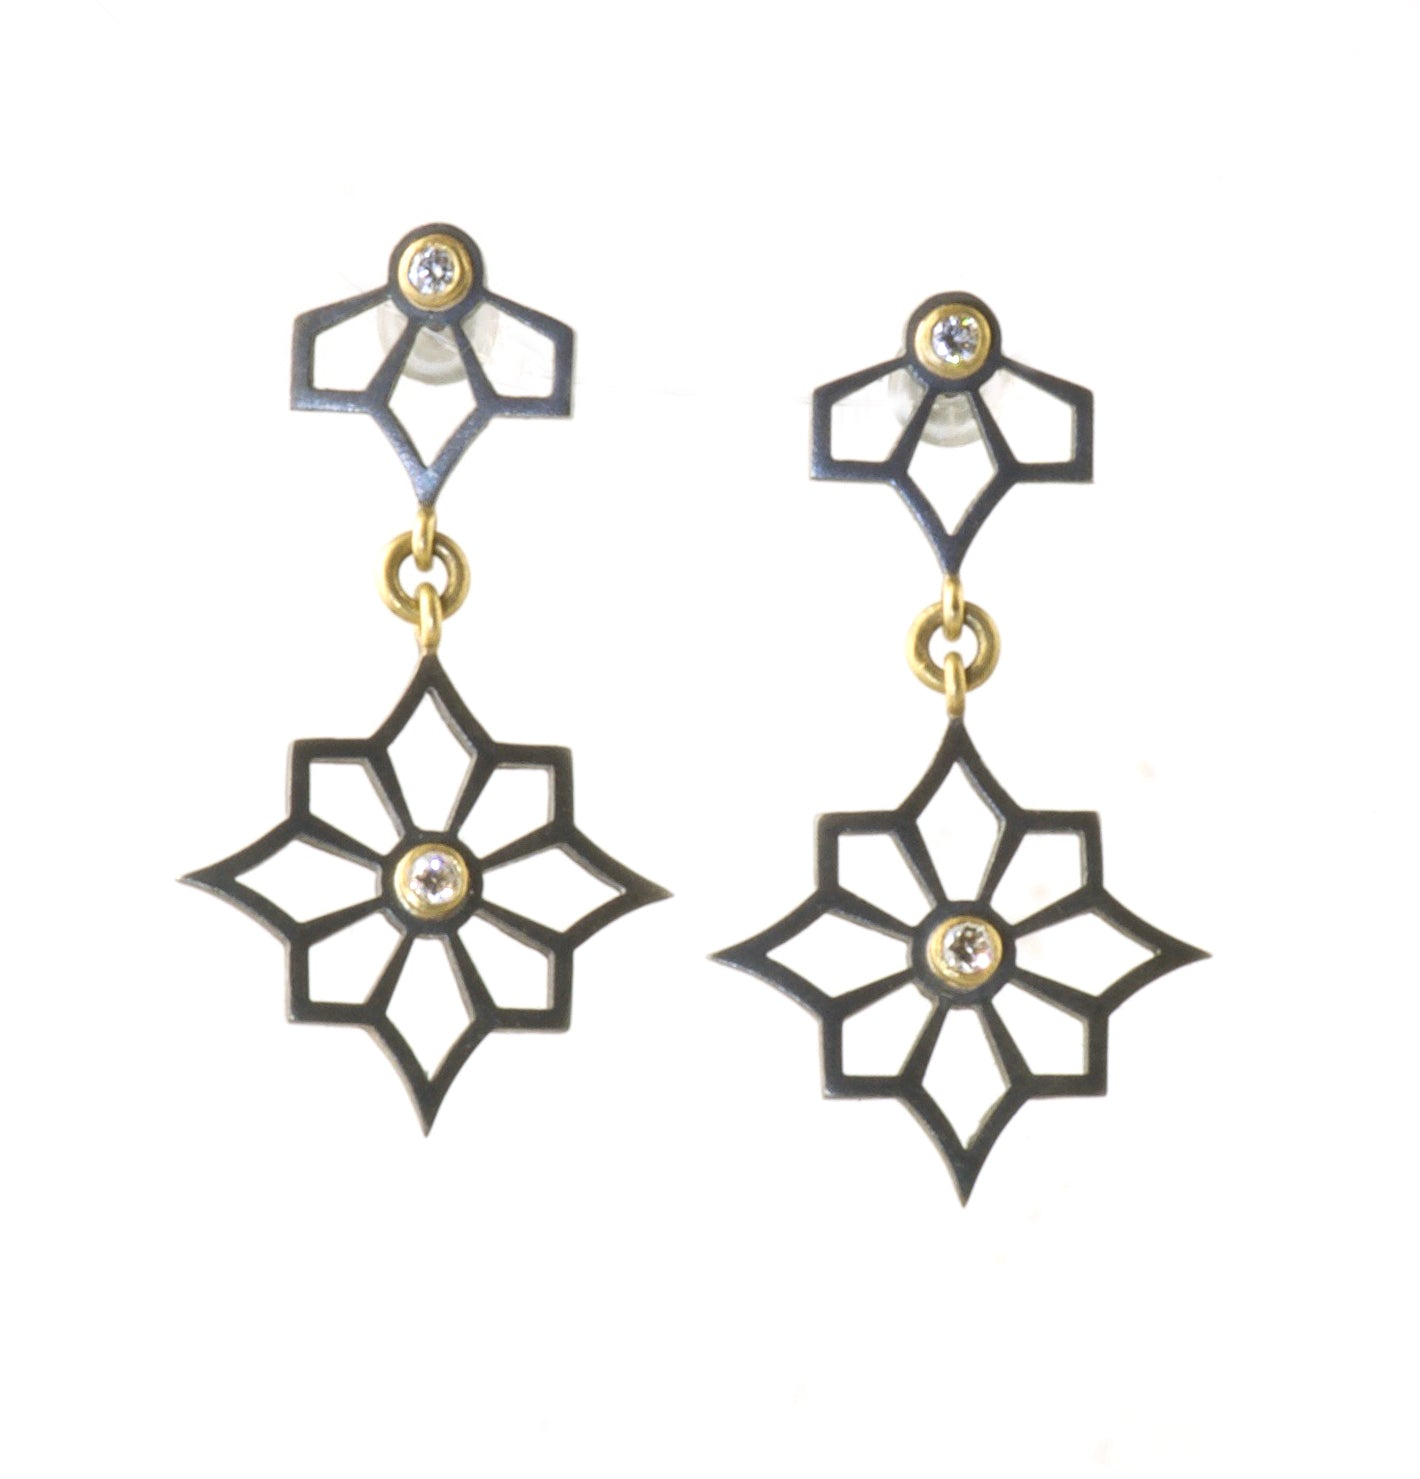 2 star Sterling Silver & 18k earrings with diamonds